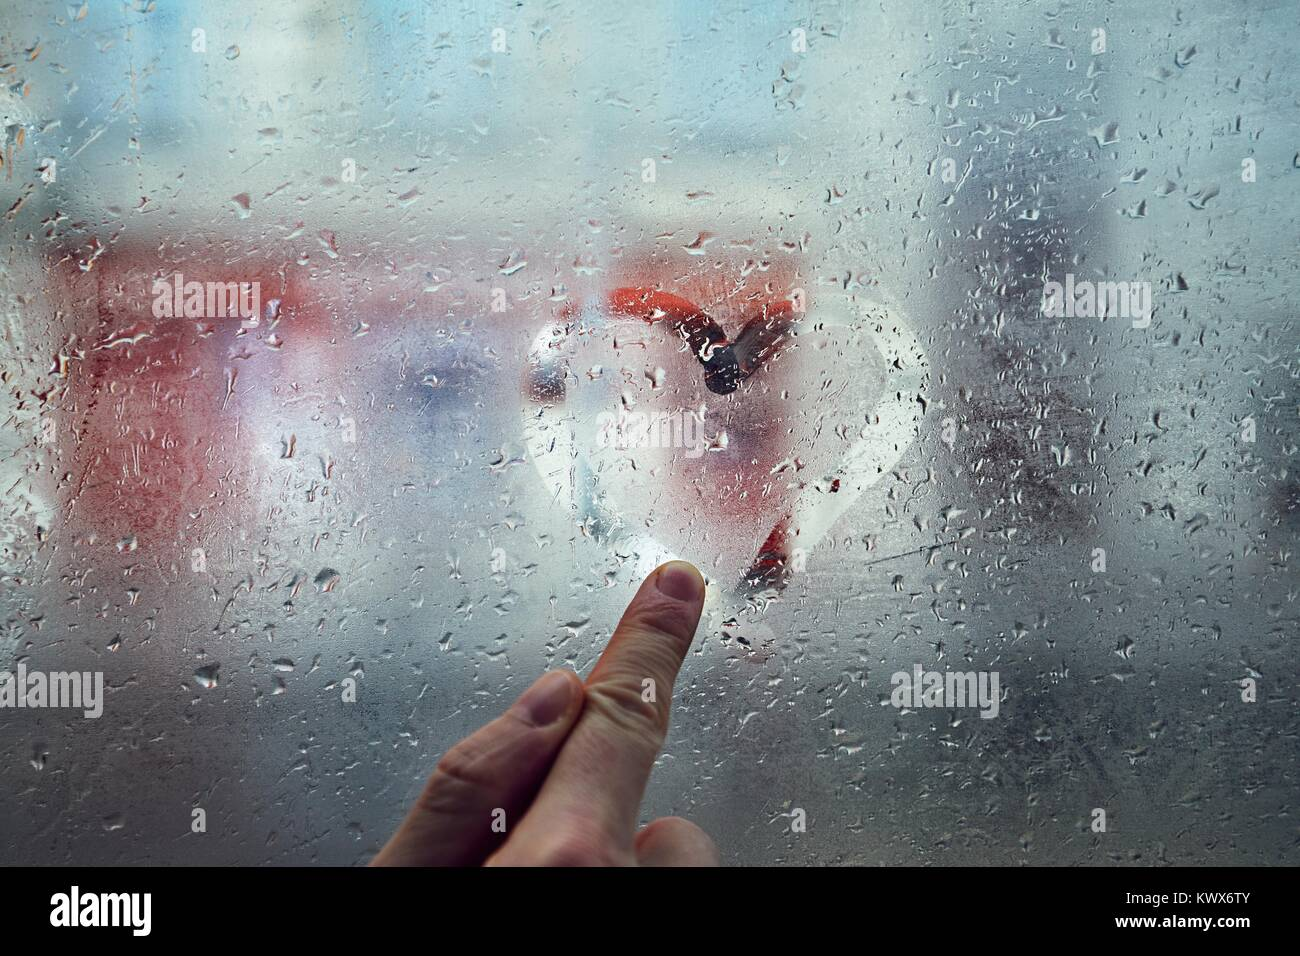 Finger of the young man drawing heart shape on the window with raindrops against city street. - Stock Image